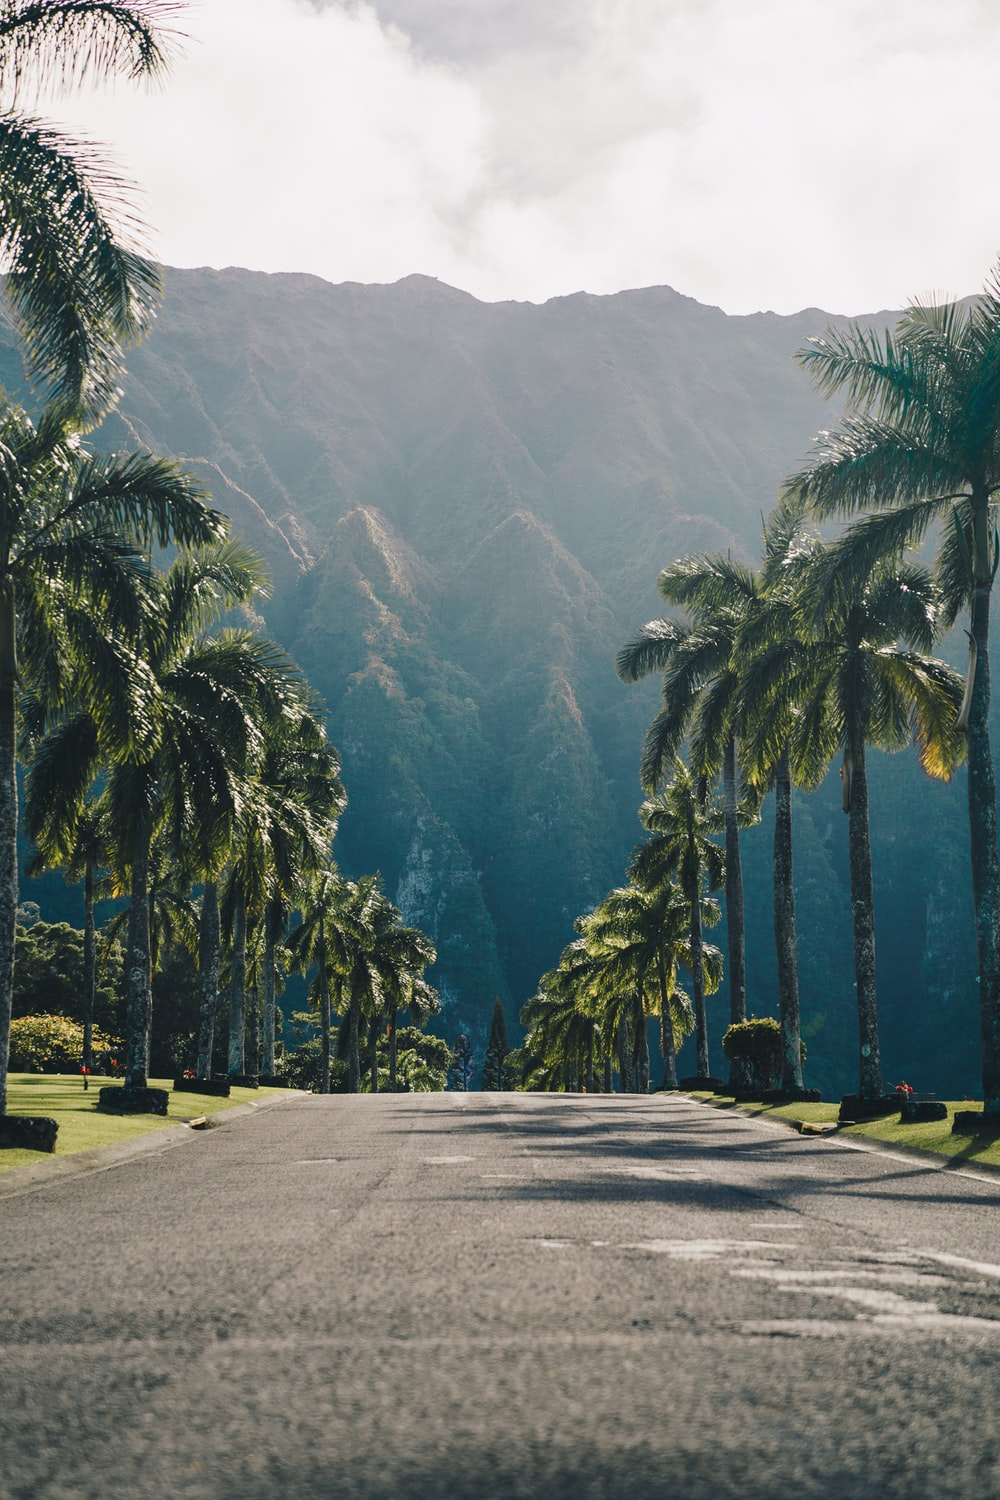 500 Hawaii Pictures Download Images on Unsplash 1000x1500